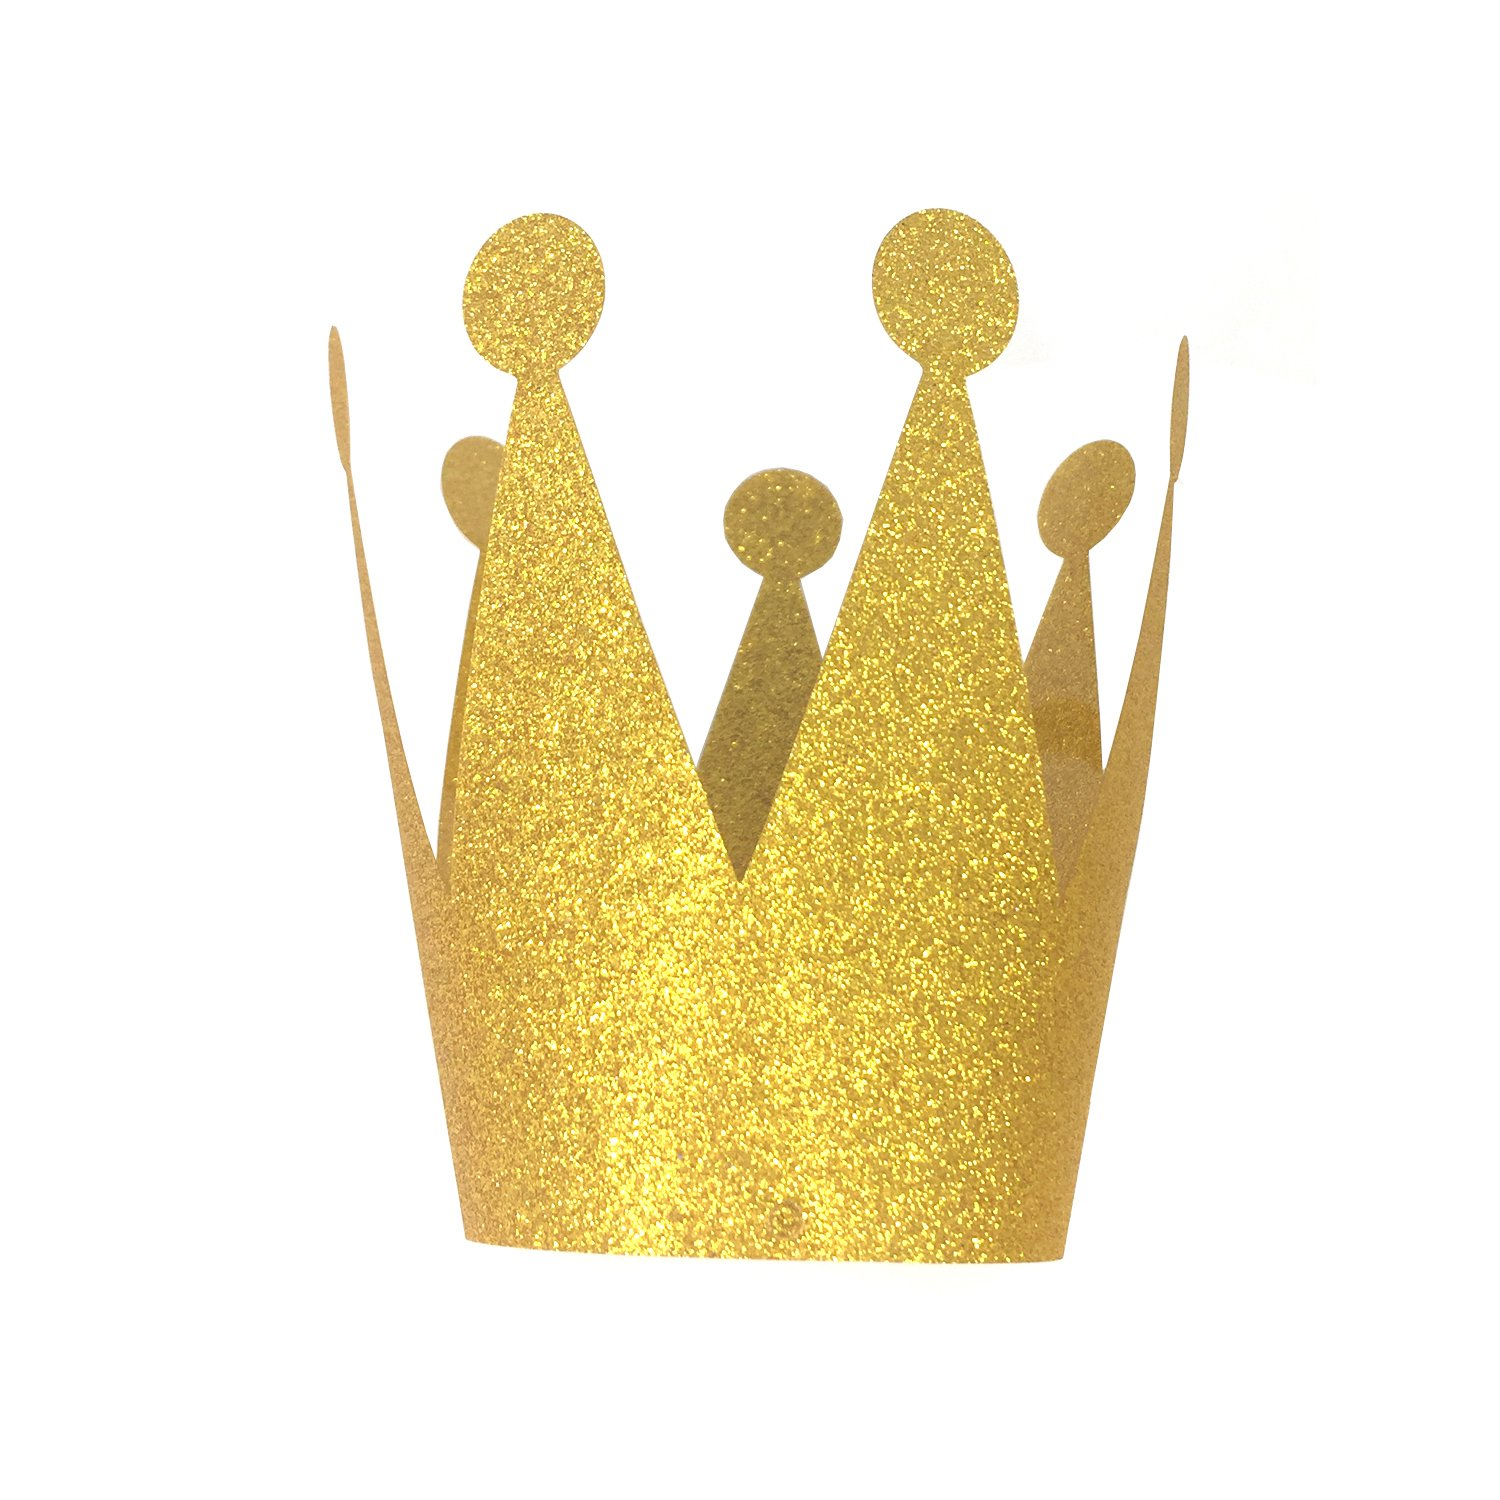 Amazon.com: Gold Glitter Party Crowns Hats, 6 ct: Toys & Games